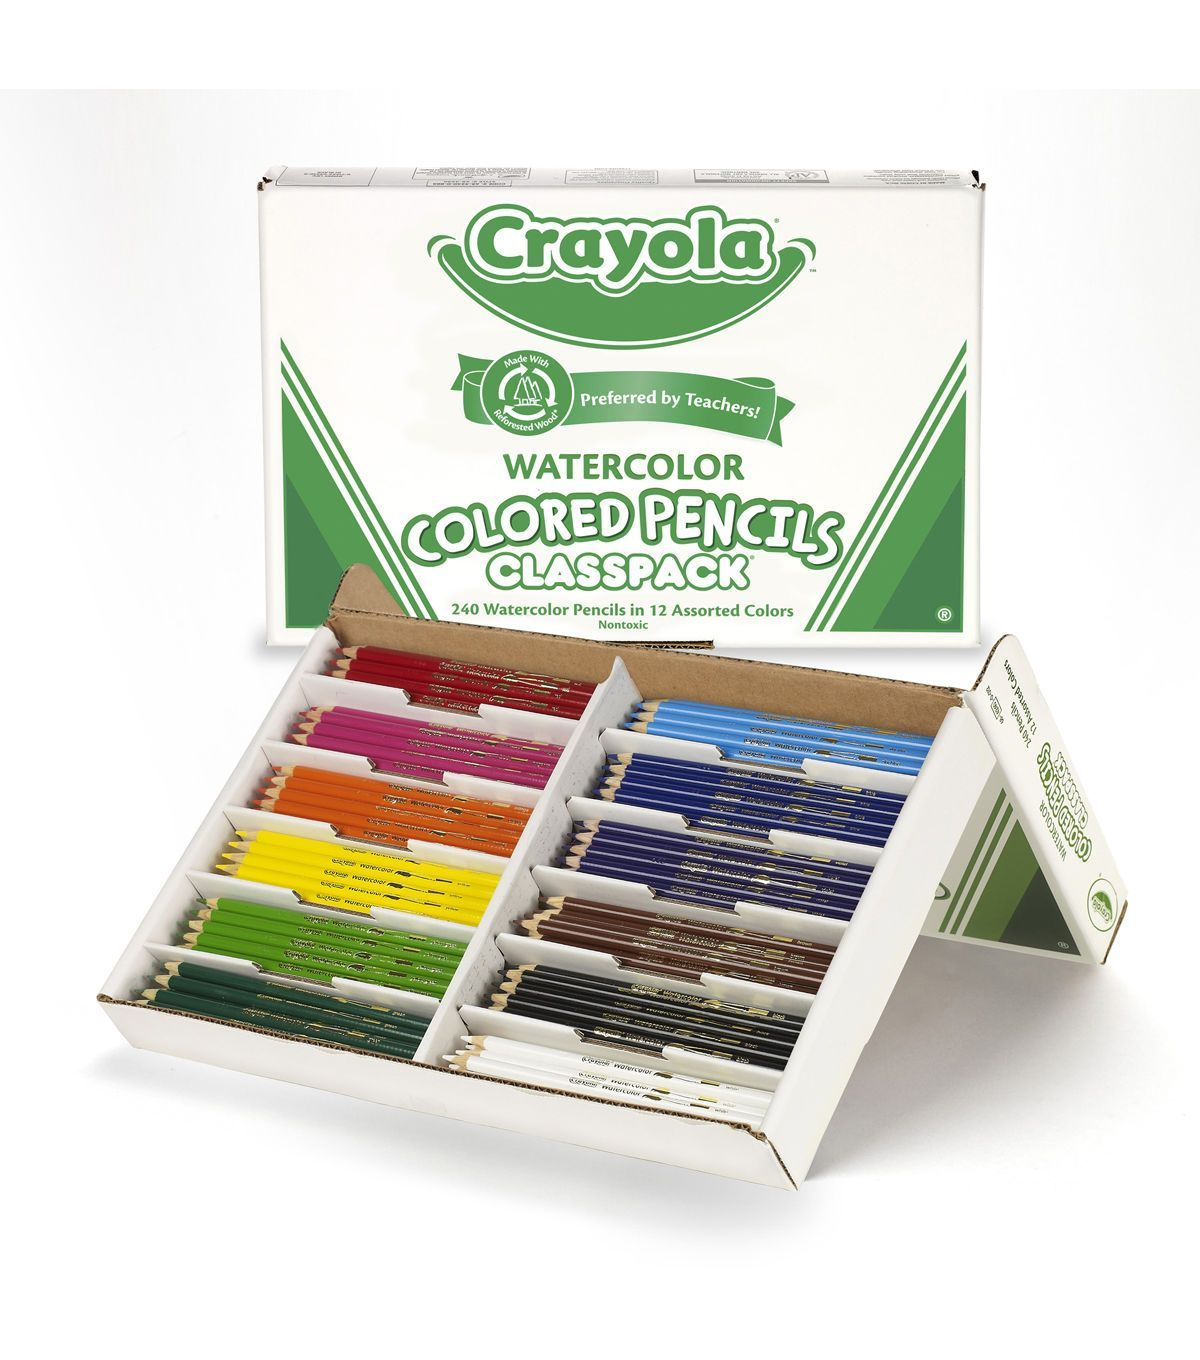 Crayola 240 Count Watercolor Colored Pencil Classpack 12 Colors